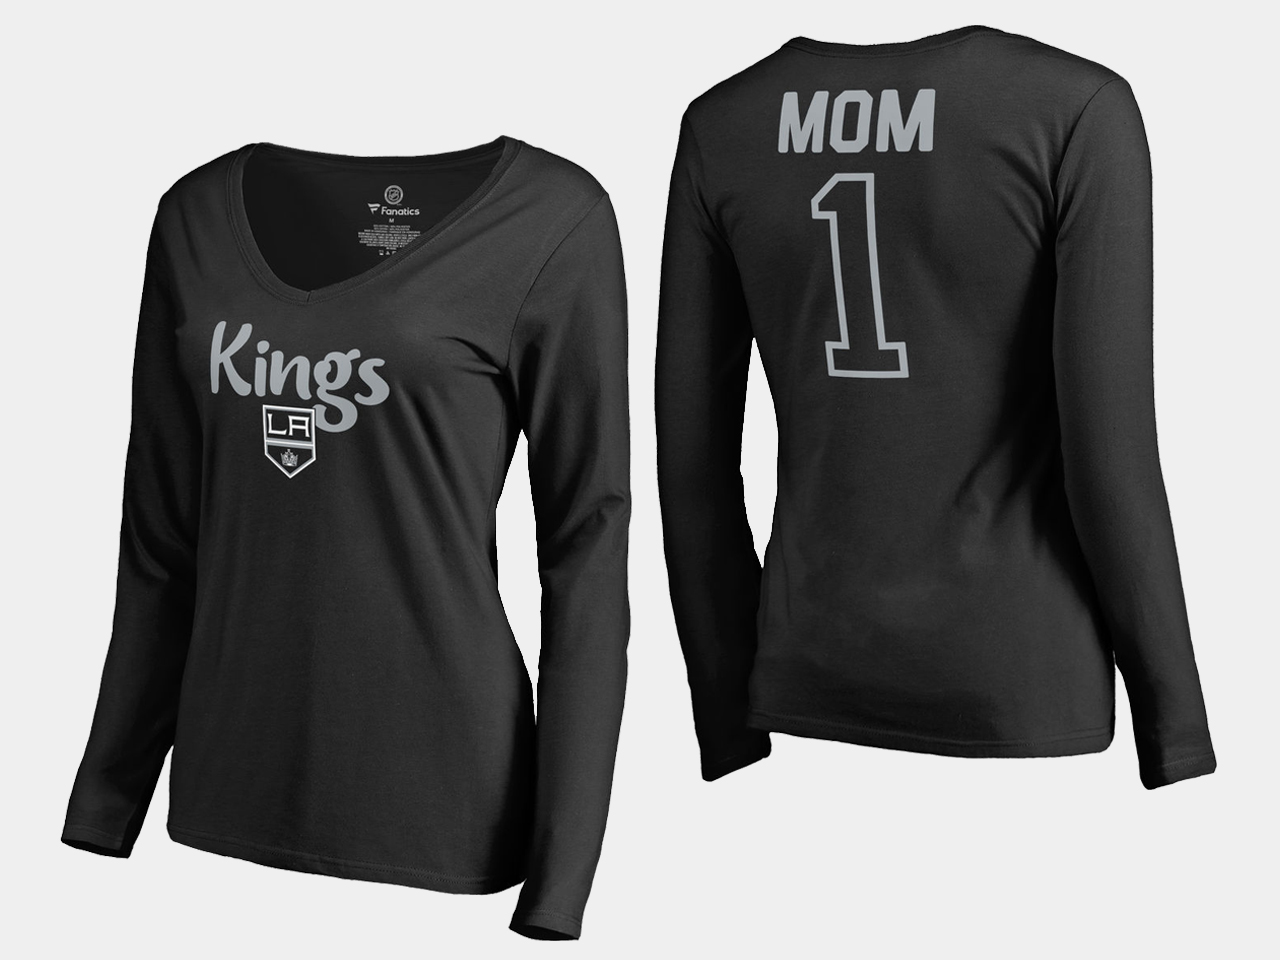 Black Los Angeles Kings Women's T-Shirt Mother's Day